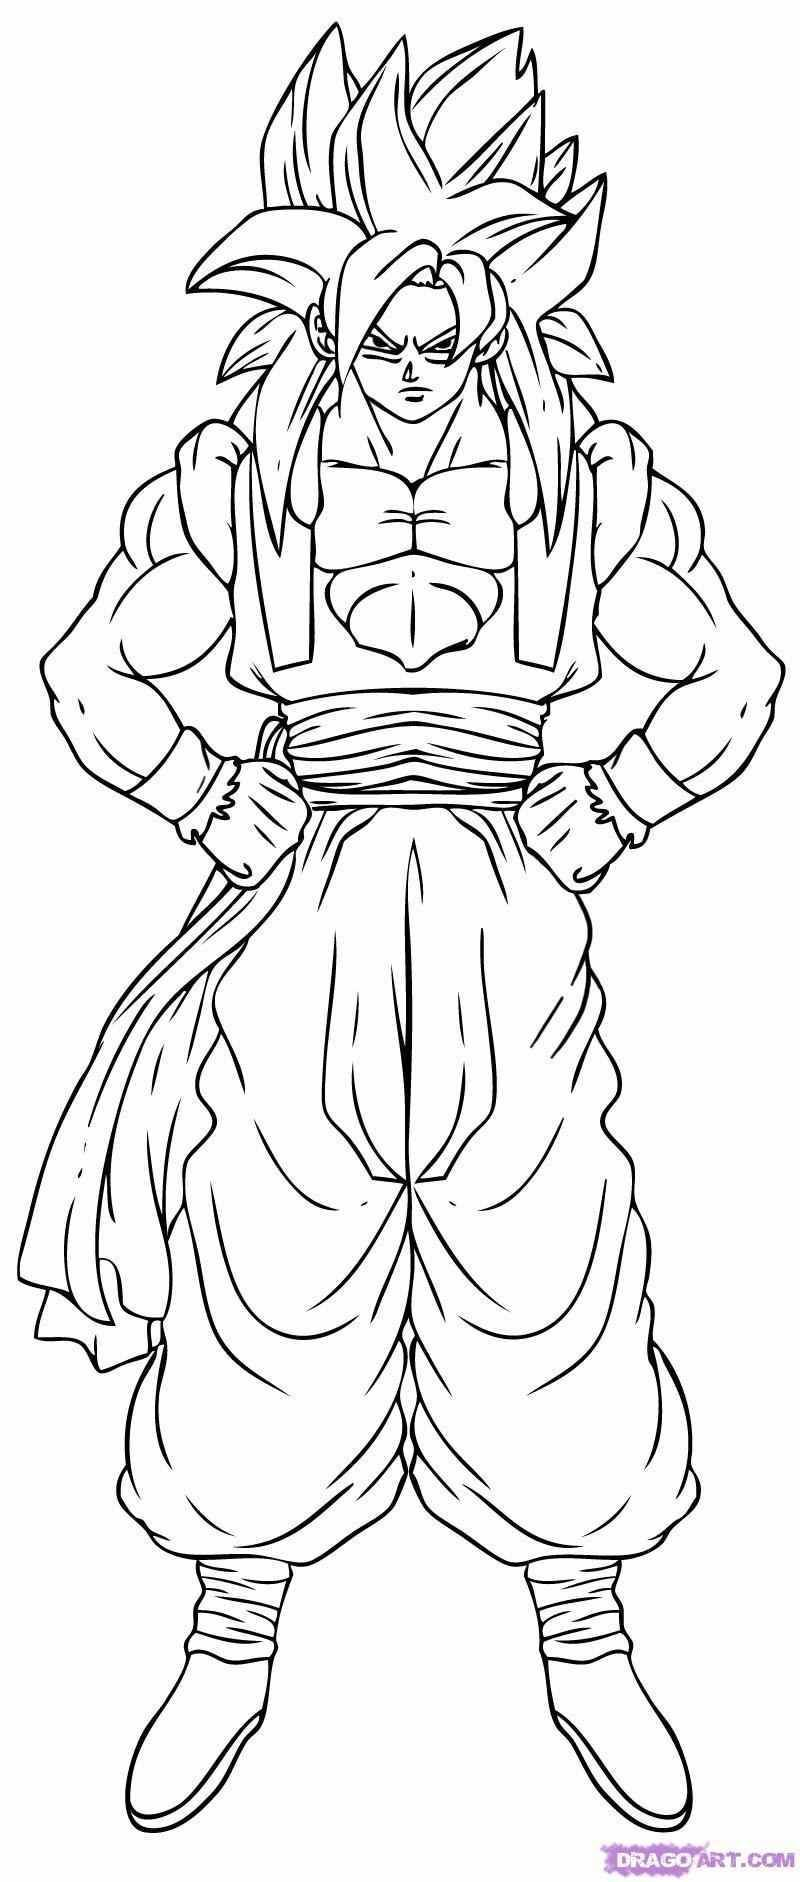 Dragon Ball Z Coloring Pages Vegeta Super Saiyan 4 Manga